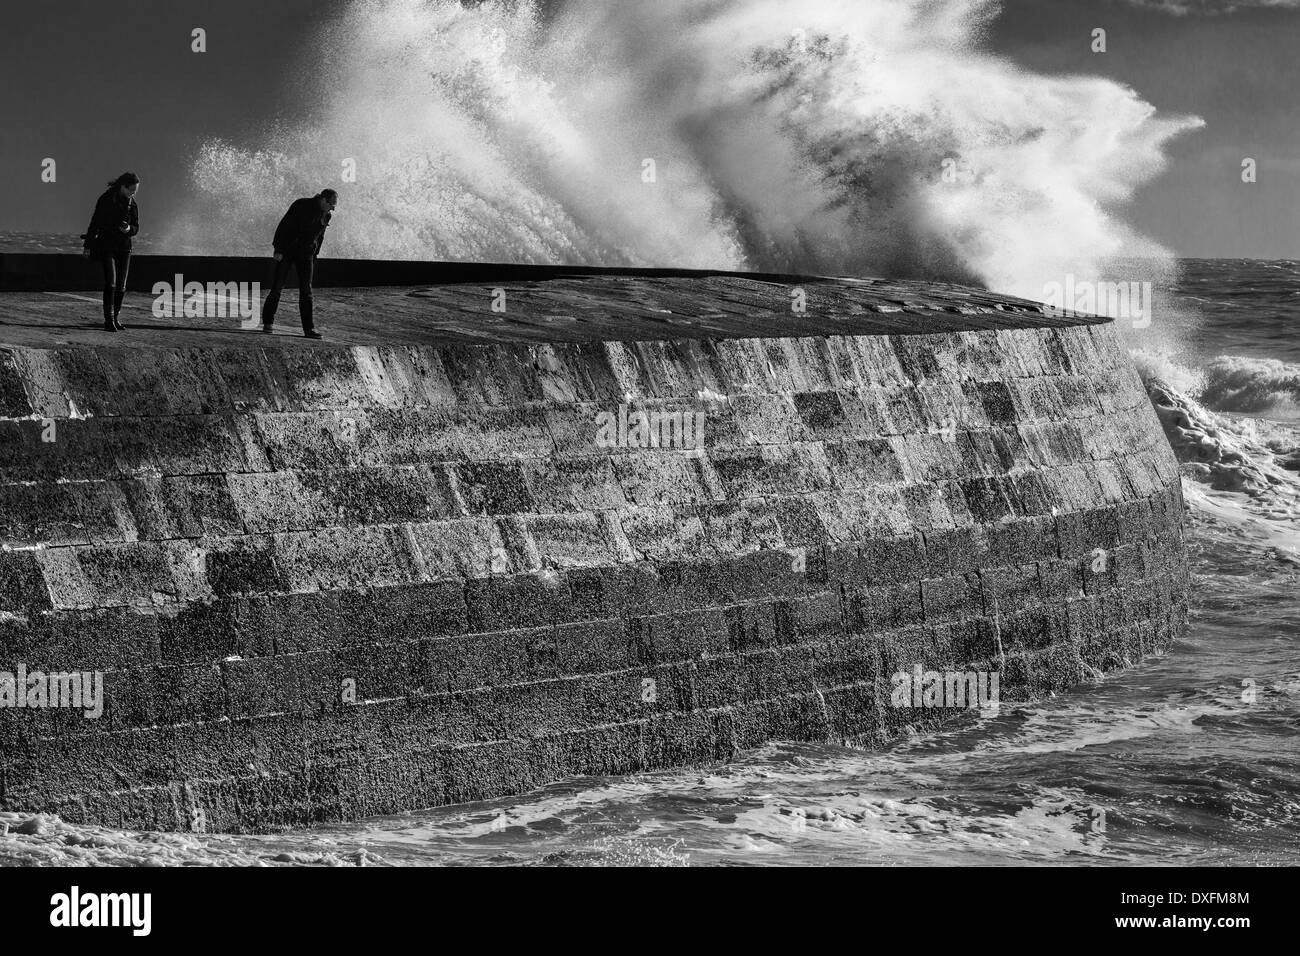 Exploring the Cobb in a strom, Lyme Regis, Dorset, Jurassic Coast, England, UK - Stock Image